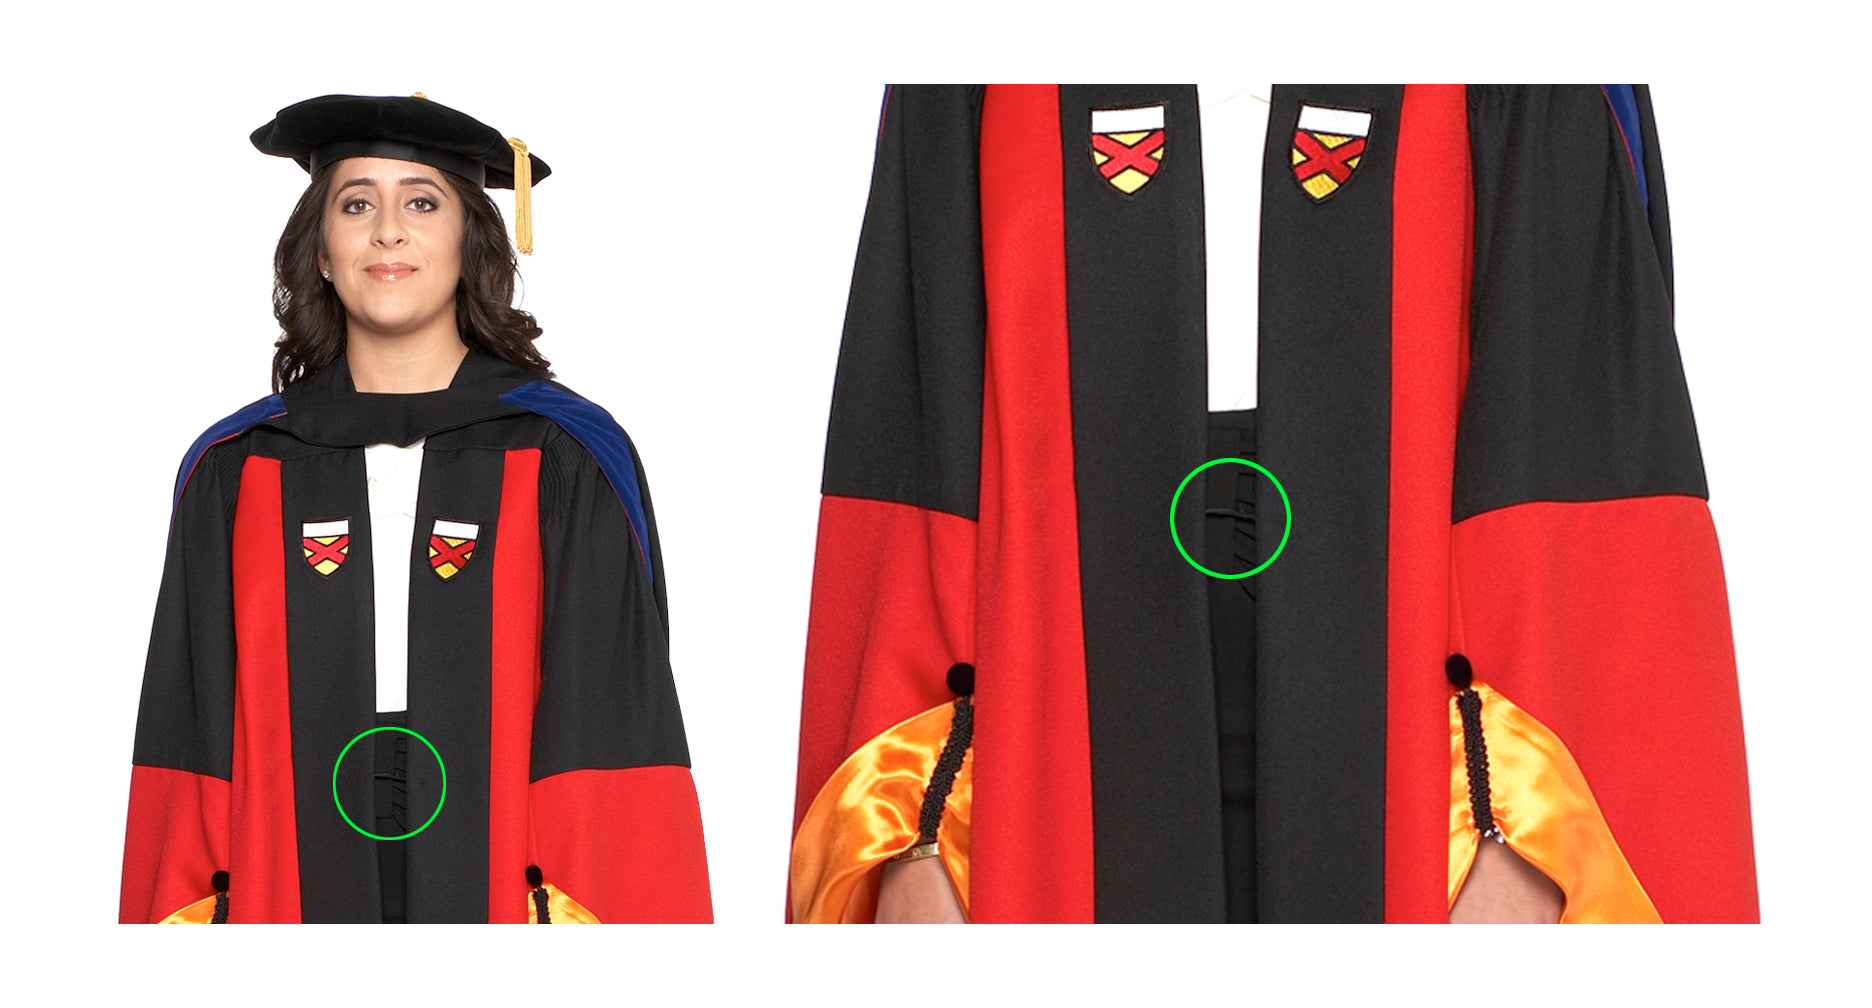 Stanford Zipper on Gown